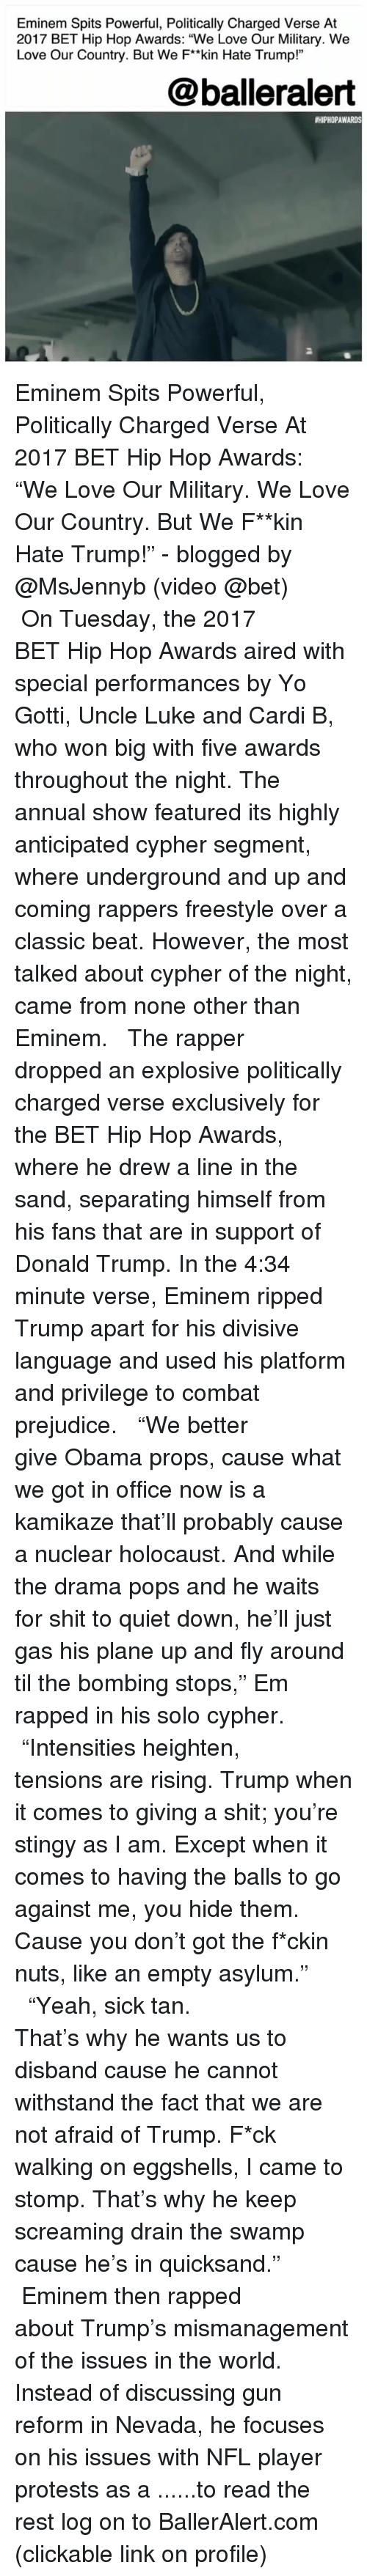 """Cypher, Donald Trump, and Eminem: Eminem Spits Powerful, Politically Charged Verse At  2017 BET Hip Hop Awards: """"We Love Our Military. We  Love Our Country. But We F*kin Hate Trump!""""  @balleralert  #HIPHOPAWARDS  2 Eminem Spits Powerful, Politically Charged Verse At 2017 BET Hip Hop Awards: """"We Love Our Military. We Love Our Country. But We F**kin Hate Trump!"""" - blogged by @MsJennyb (video @bet) ⠀⠀⠀⠀⠀⠀⠀ ⠀⠀⠀⠀⠀⠀⠀ On Tuesday, the 2017 BET Hip Hop Awards aired with special performances by Yo Gotti, Uncle Luke and Cardi B, who won big with five awards throughout the night. The annual show featured its highly anticipated cypher segment, where underground and up and coming rappers freestyle over a classic beat. However, the most talked about cypher of the night, came from none other than Eminem. ⠀⠀⠀⠀⠀⠀⠀ ⠀⠀⠀⠀⠀⠀⠀ The rapper dropped an explosive politically charged verse exclusively for the BET Hip Hop Awards, where he drew a line in the sand, separating himself from his fans that are in support of Donald Trump. In the 4:34 minute verse, Eminem ripped Trump apart for his divisive language and used his platform and privilege to combat prejudice. ⠀⠀⠀⠀⠀⠀⠀ ⠀⠀⠀⠀⠀⠀⠀ """"We better give Obama props, cause what we got in office now is a kamikaze that'll probably cause a nuclear holocaust. And while the drama pops and he waits for shit to quiet down, he'll just gas his plane up and fly around til the bombing stops,"""" Em rapped in his solo cypher. ⠀⠀⠀⠀⠀⠀⠀ ⠀⠀⠀⠀⠀⠀⠀ """"Intensities heighten, tensions are rising. Trump when it comes to giving a shit; you're stingy as I am. Except when it comes to having the balls to go against me, you hide them. Cause you don't got the f*ckin nuts, like an empty asylum."""" ⠀⠀⠀⠀⠀⠀⠀ ⠀⠀⠀⠀⠀⠀⠀ """"Yeah, sick tan. That's why he wants us to disband cause he cannot withstand the fact that we are not afraid of Trump. F*ck walking on eggshells, I came to stomp. That's why he keep screaming drain the swamp cause he's in quicksand."""" ⠀⠀⠀⠀⠀⠀⠀ ⠀⠀⠀⠀⠀⠀⠀ Eminem then rapped about Trump's"""